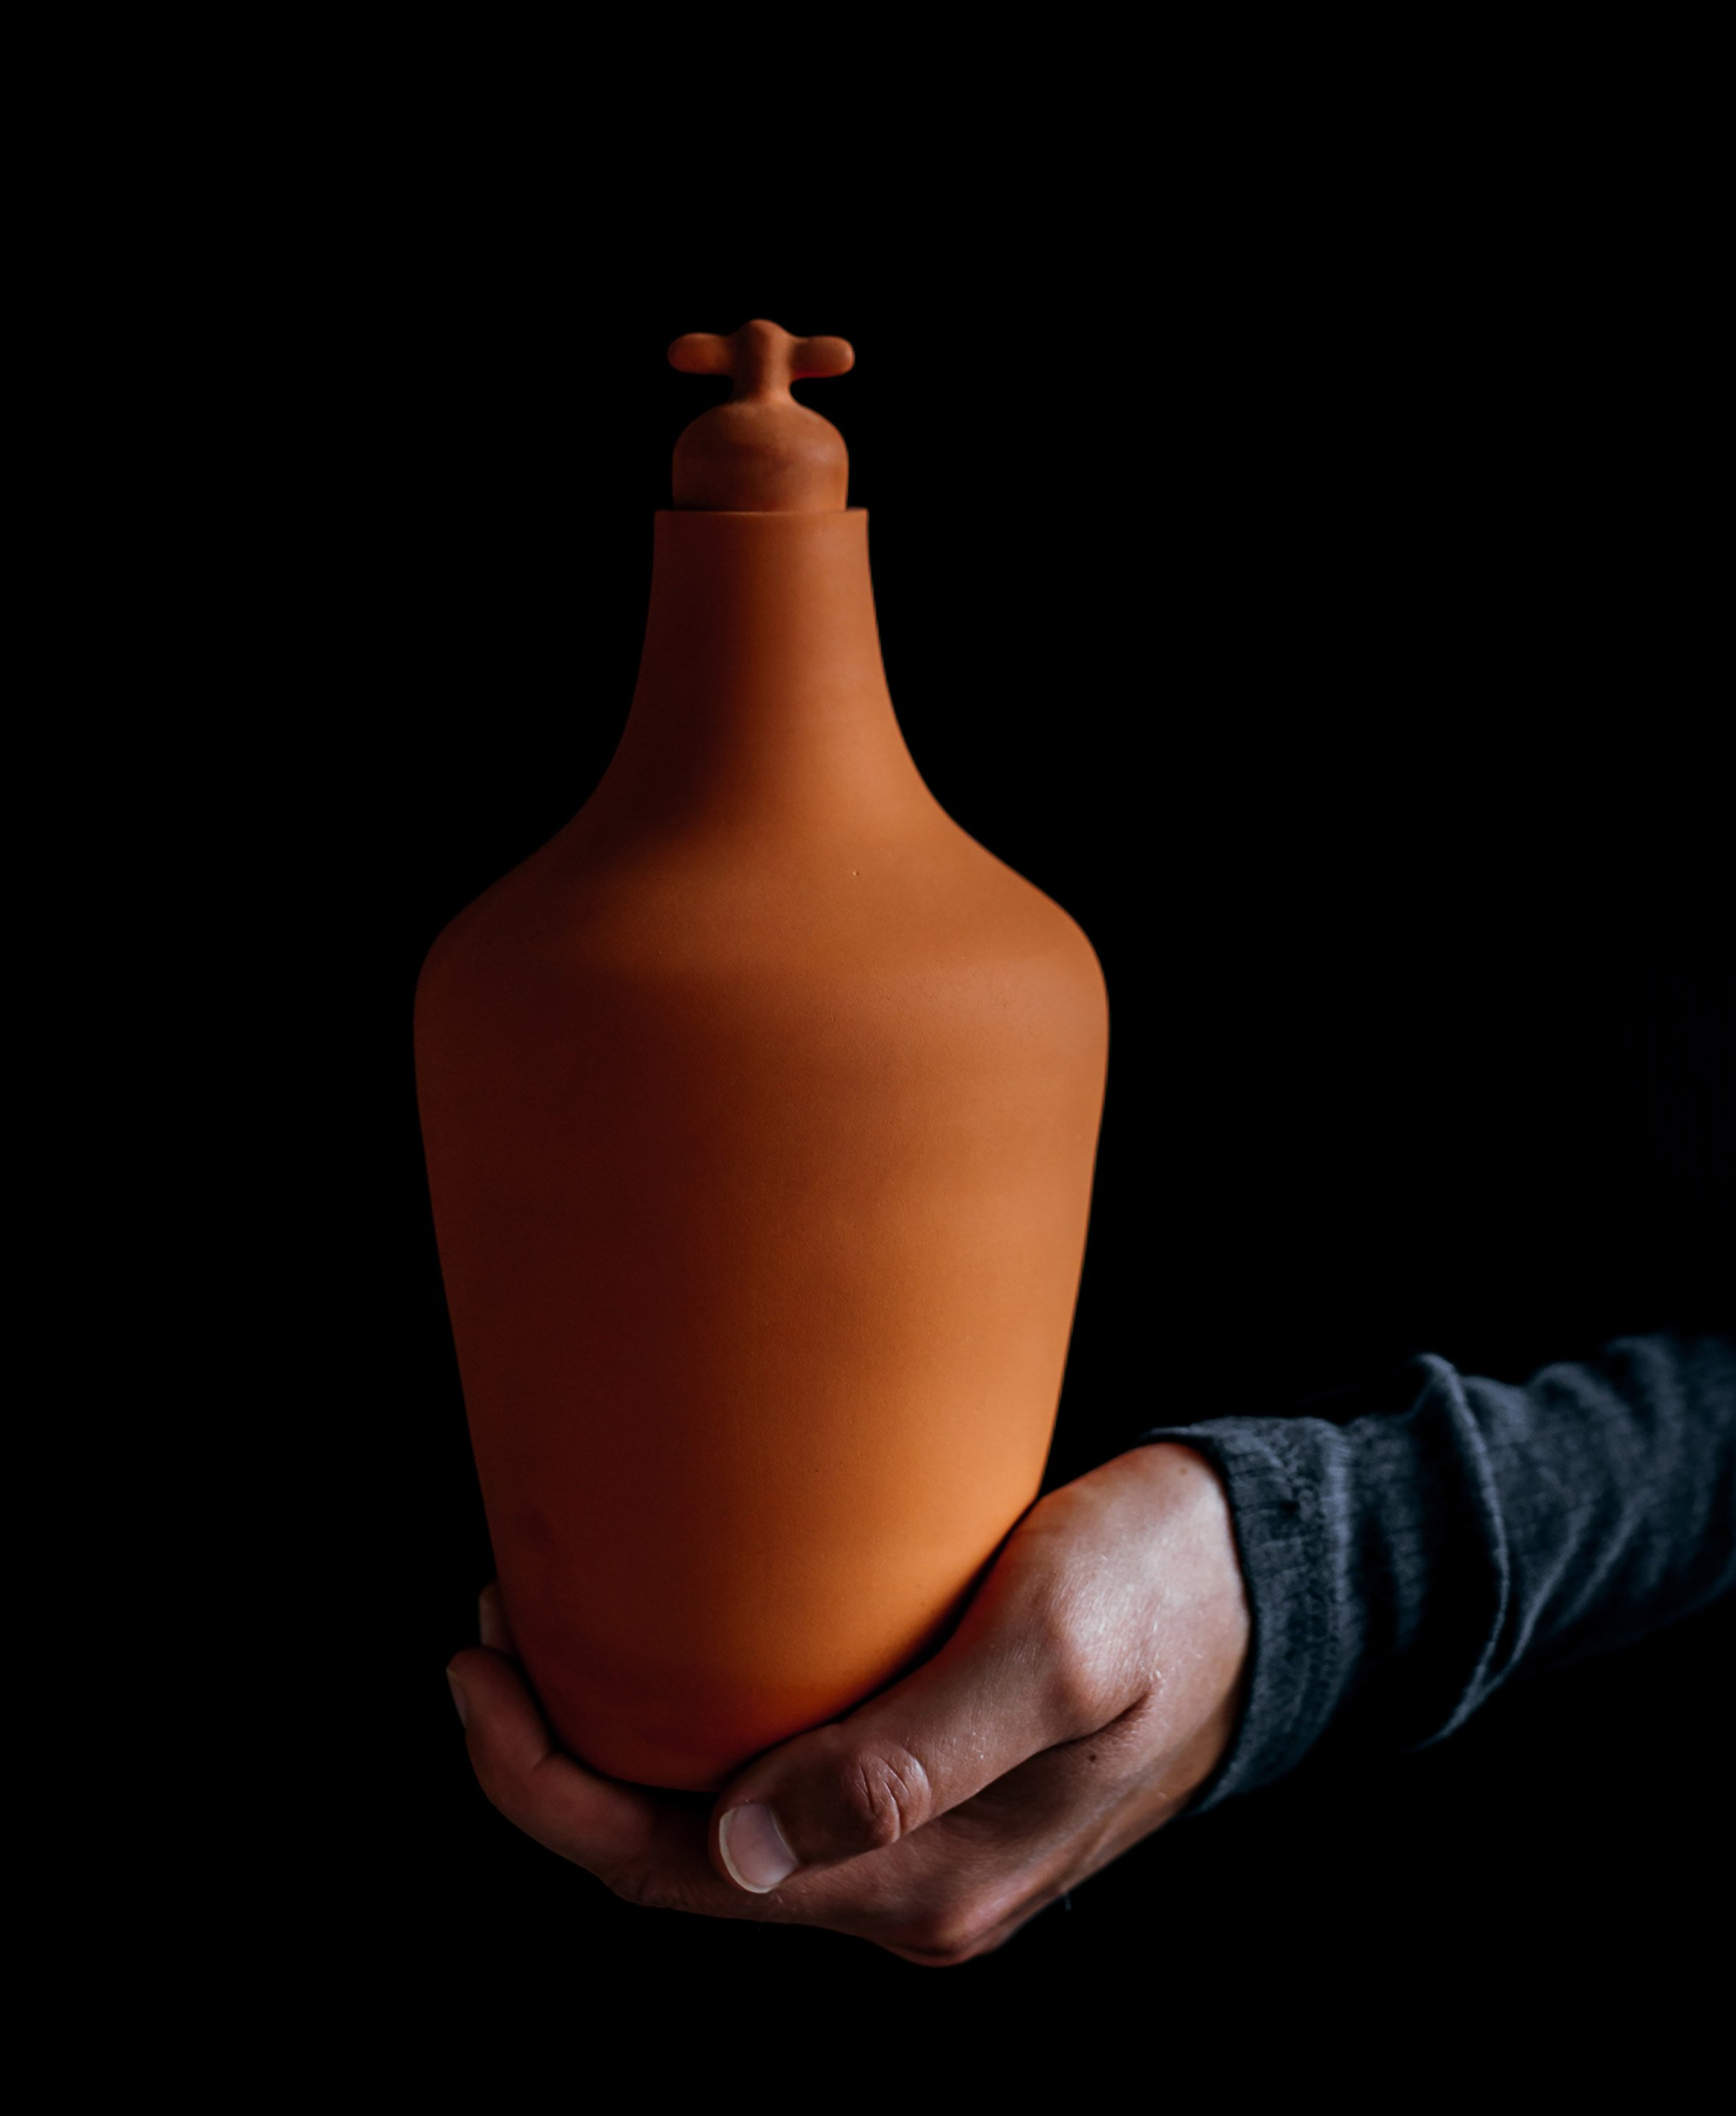 Lotte de Raadt's terracotta carafes are designed to encourage people to drink tap water